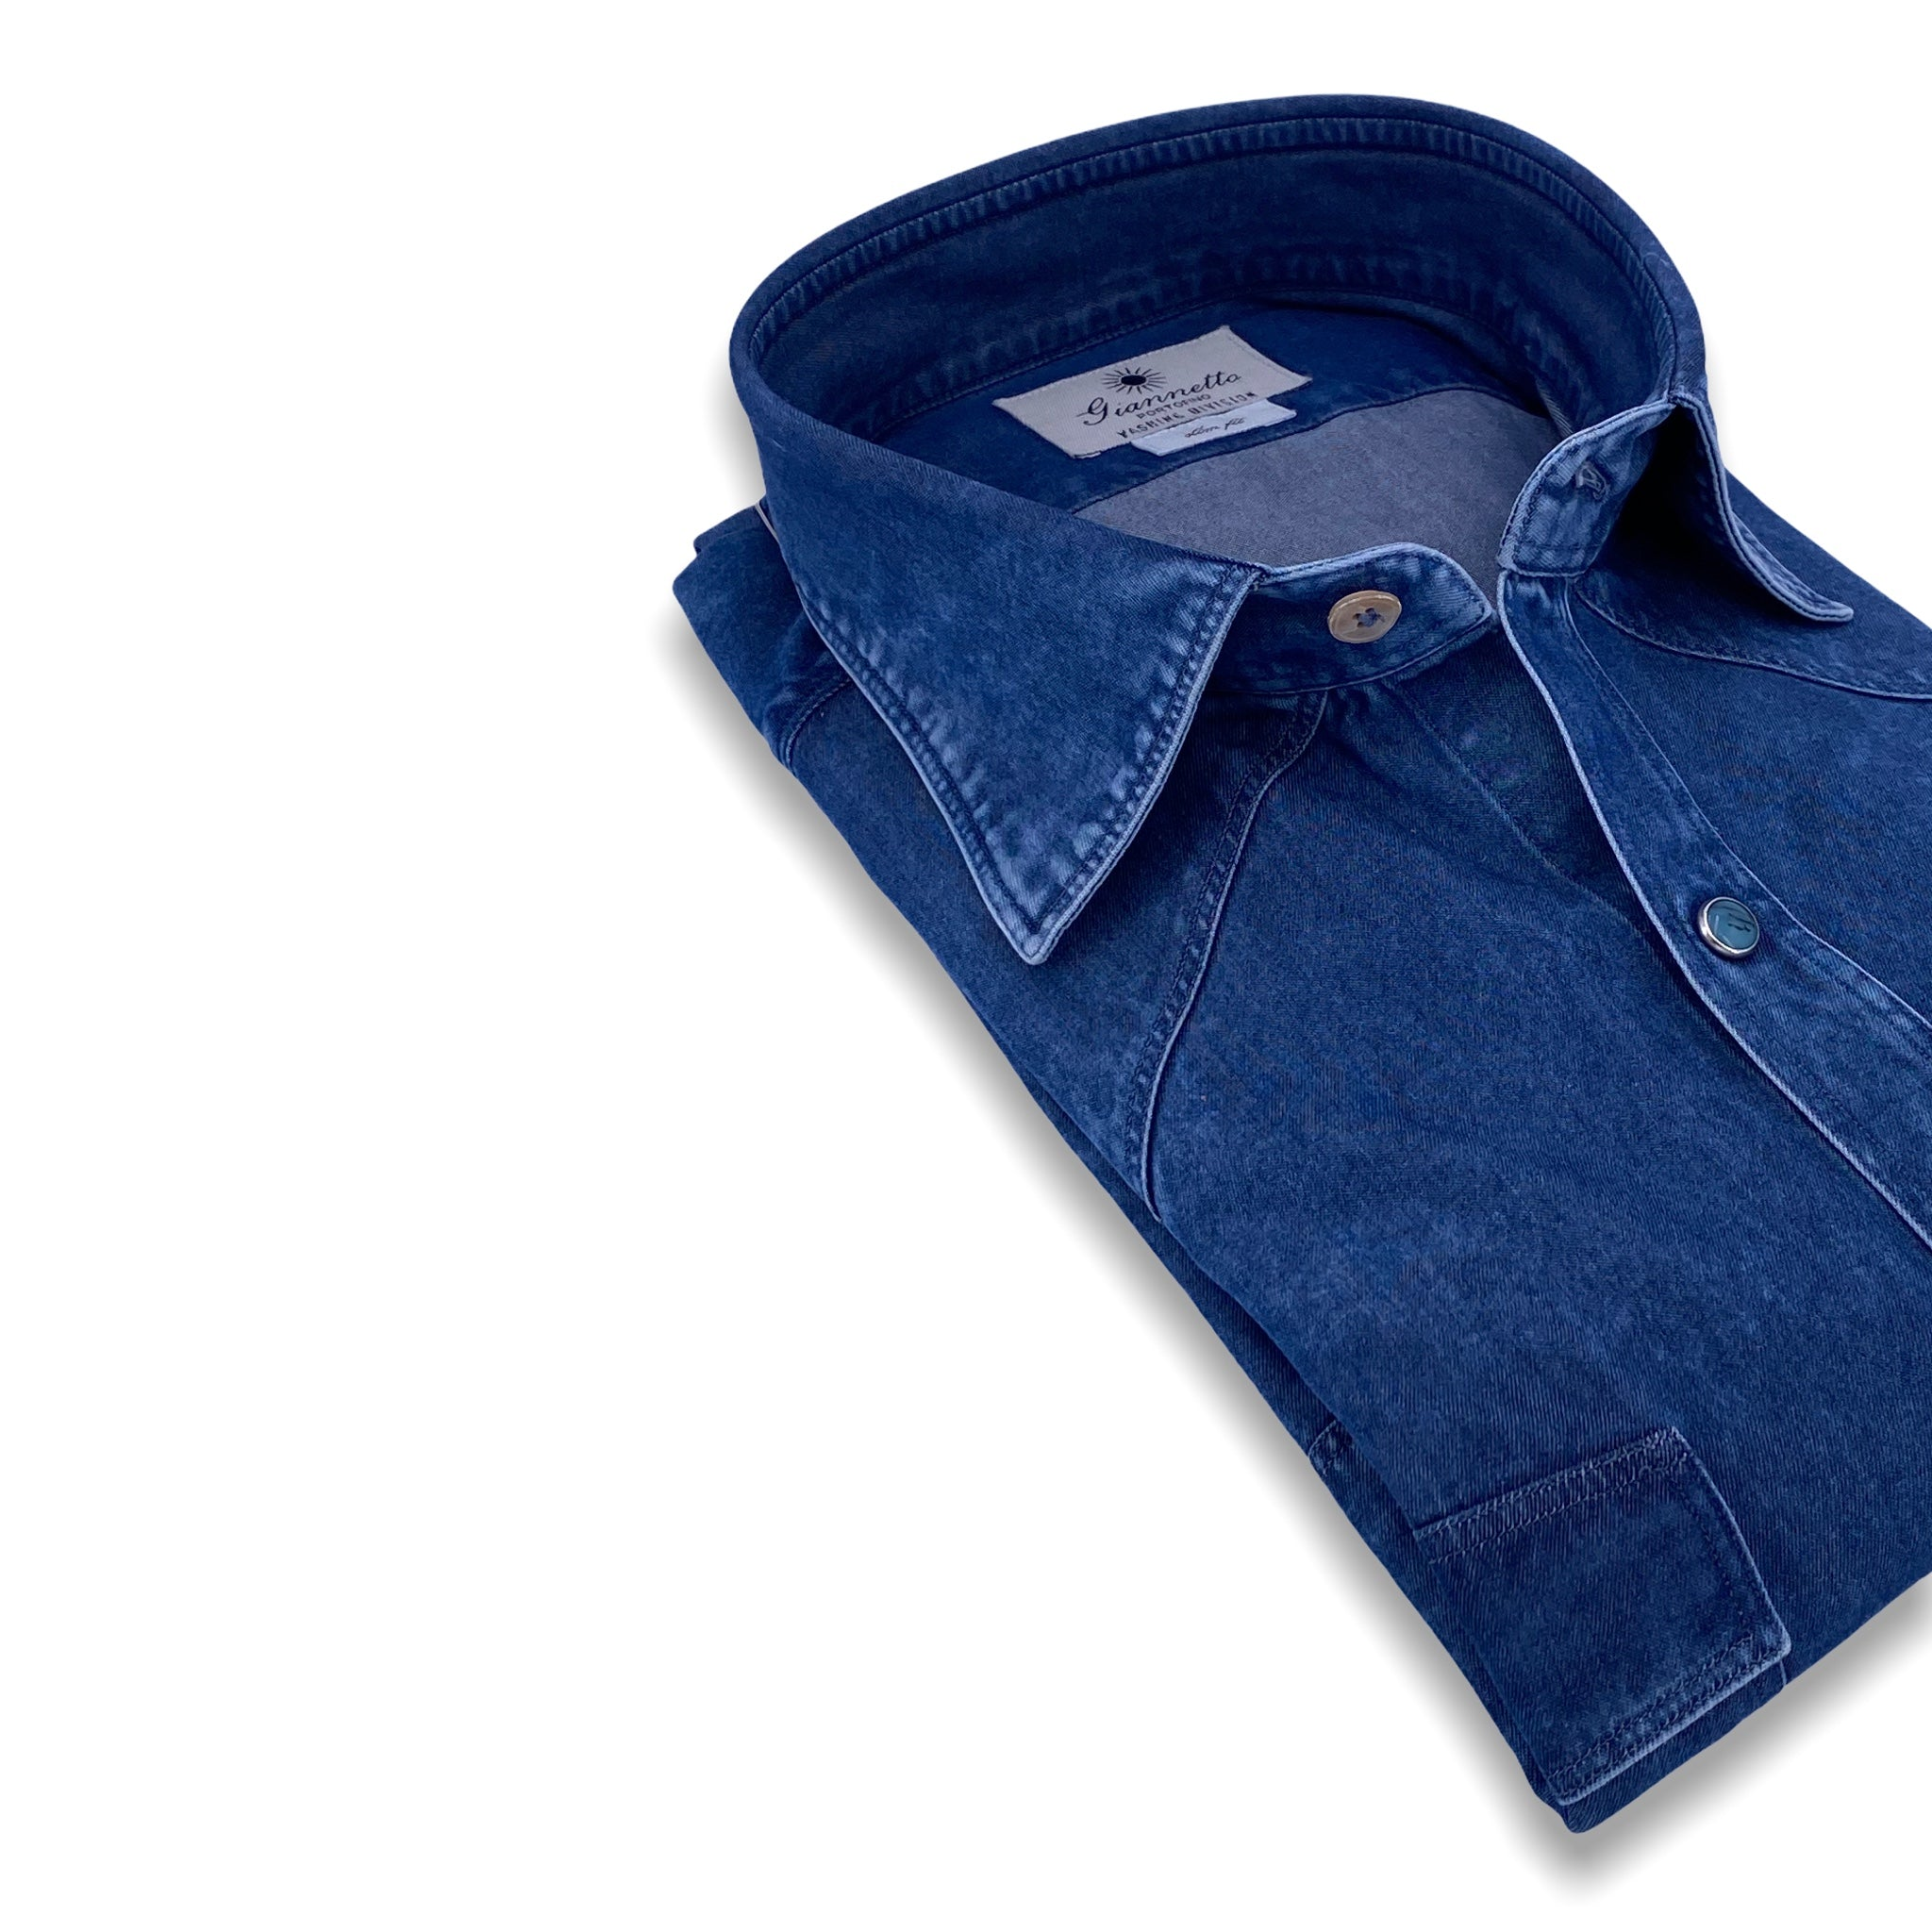 Giannetto Portofino washed Western cotton denim shirt SS21 collection